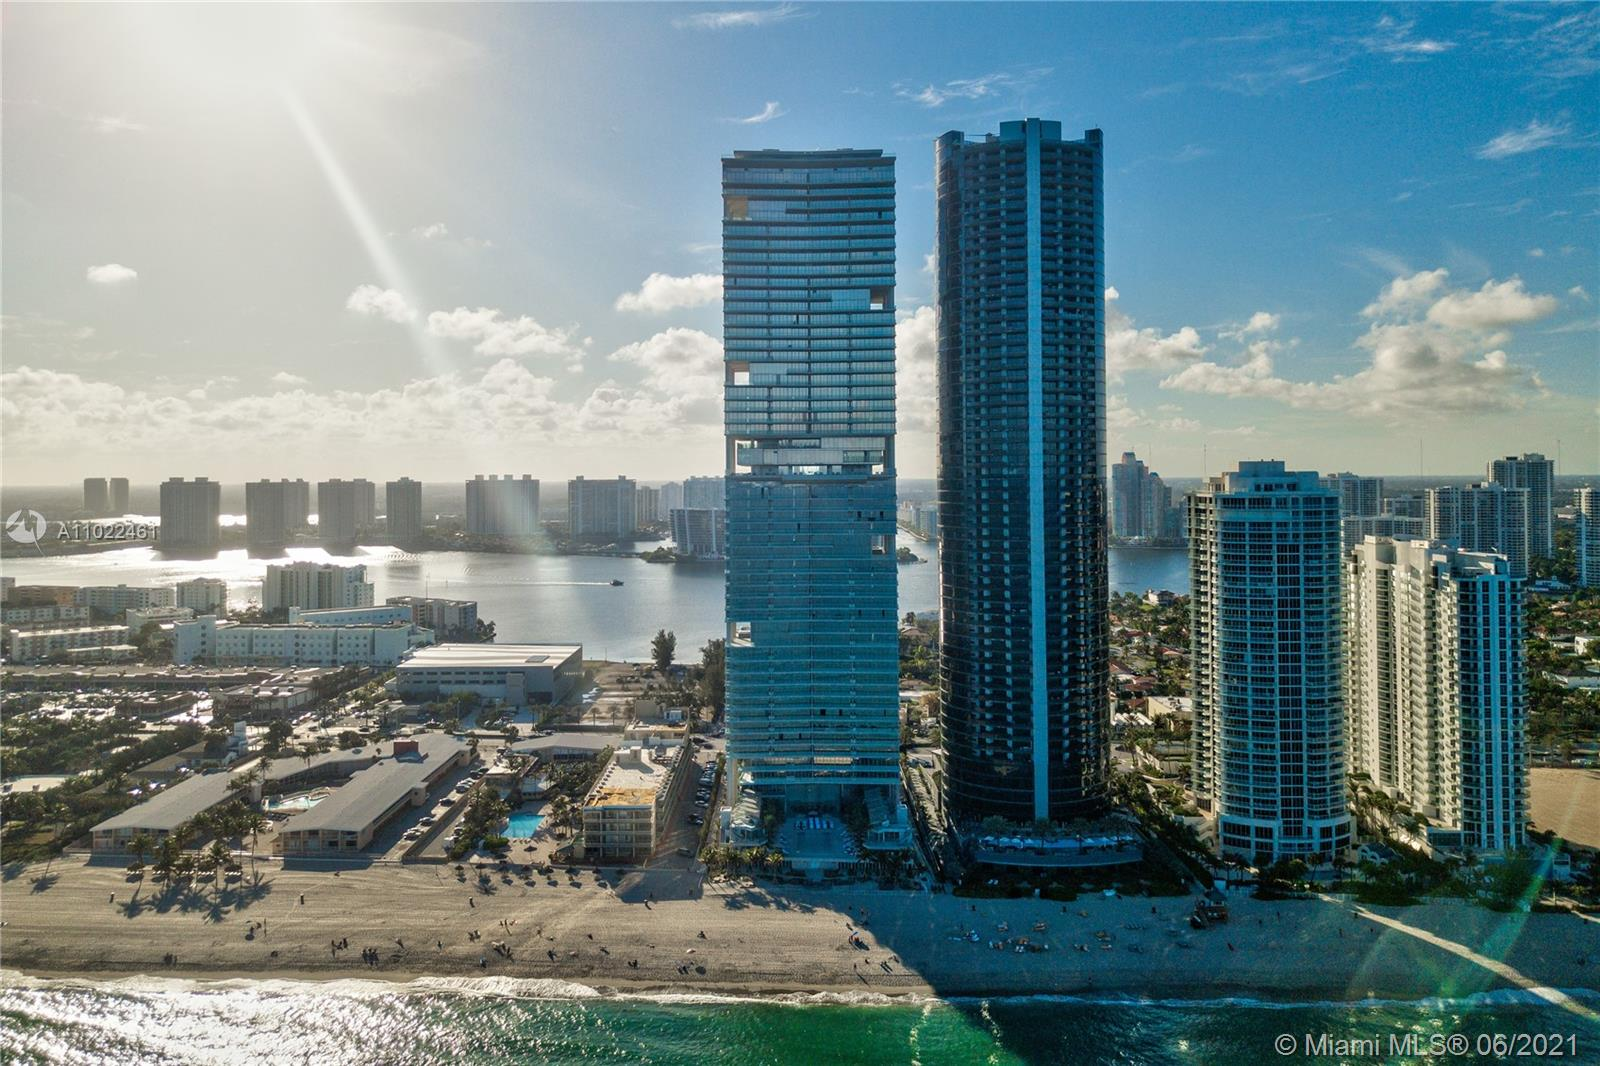 MOVE-IN READY. NO developer Fees. Ultra-luxury, beachfront Turnberry Ocean Club, offering a lifestyle of luxury and sophistication like none other. Unit 1503 is a 3 BED/4.5 Bath + bonus room. This flow-through residence offers the best of two worlds: direct Ocean & Intracoastal Views. New Italian Porcelain flooring, new custom made closets and remote control windows treatments. Gaggenau® appliances: convention & steam ovens, warming drawer,  microwave, induction cooktop, integrated coffee espresso/cappuccino maker, & wine cooler.  Steam shower in master. Summer kitchen in sunrise terrace. Turnberry OC offers first-class amenities: 3 swimming pools, private dining, Spa, fitness center, dog park, kid's room, theater and more. BEST LOCATION in Beautiful Sunny Isles. Tenant Occupied.